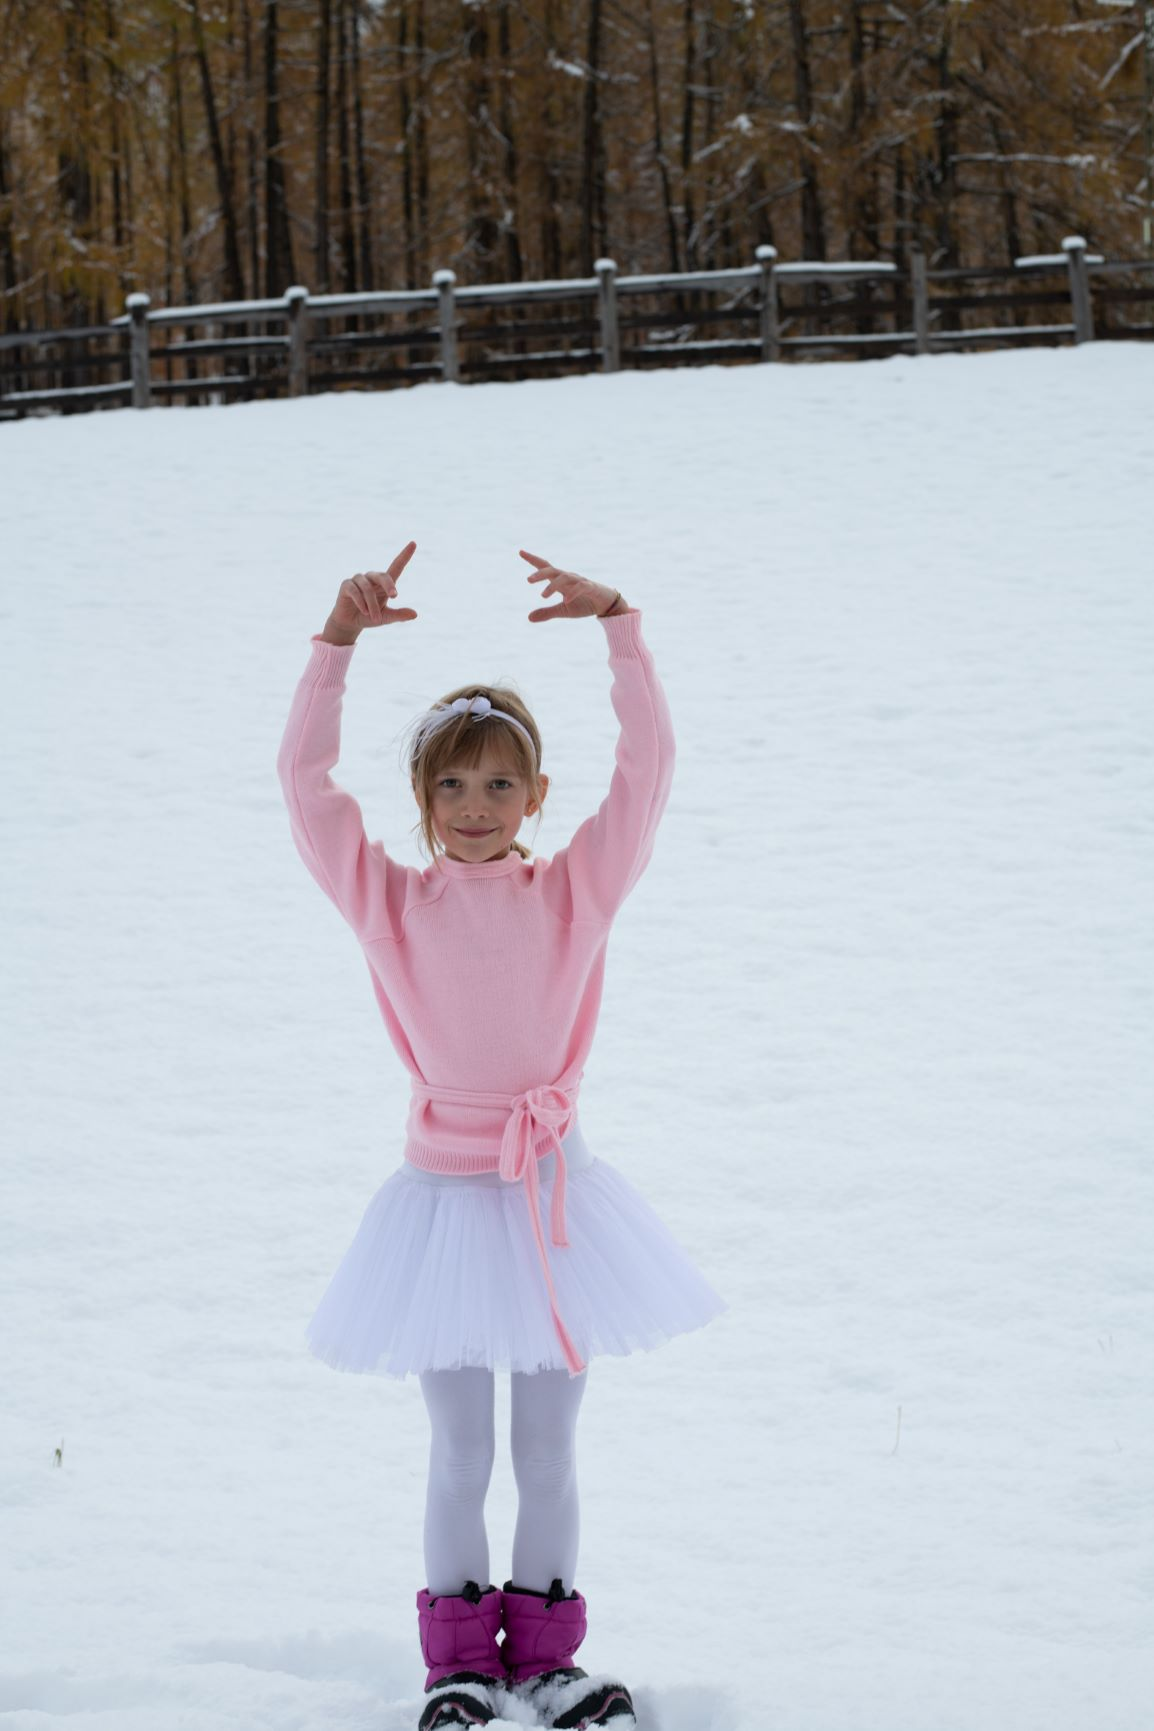 Ballerina - Port de Bras in Snow - Photo © Daniela Brugger